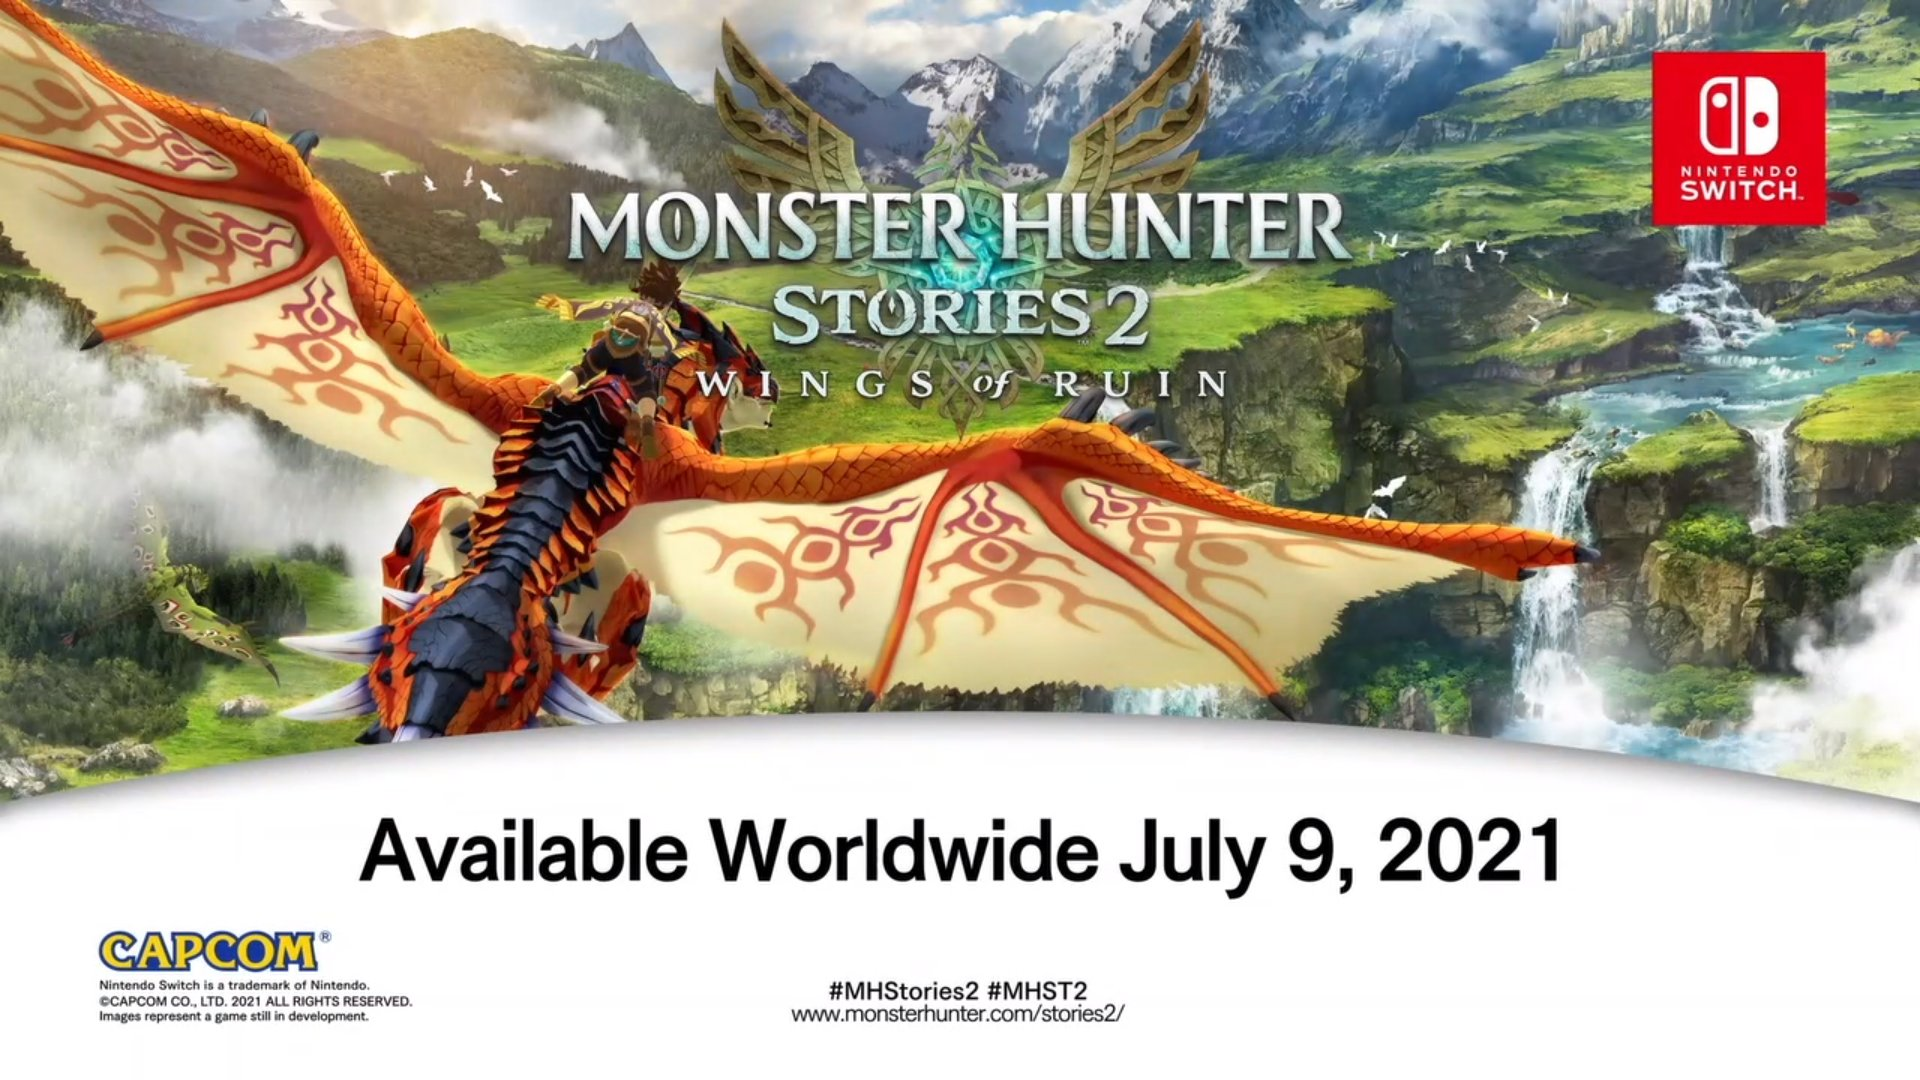 Monster Hunter Stories 2 Reveals Release Date, Coming To PC